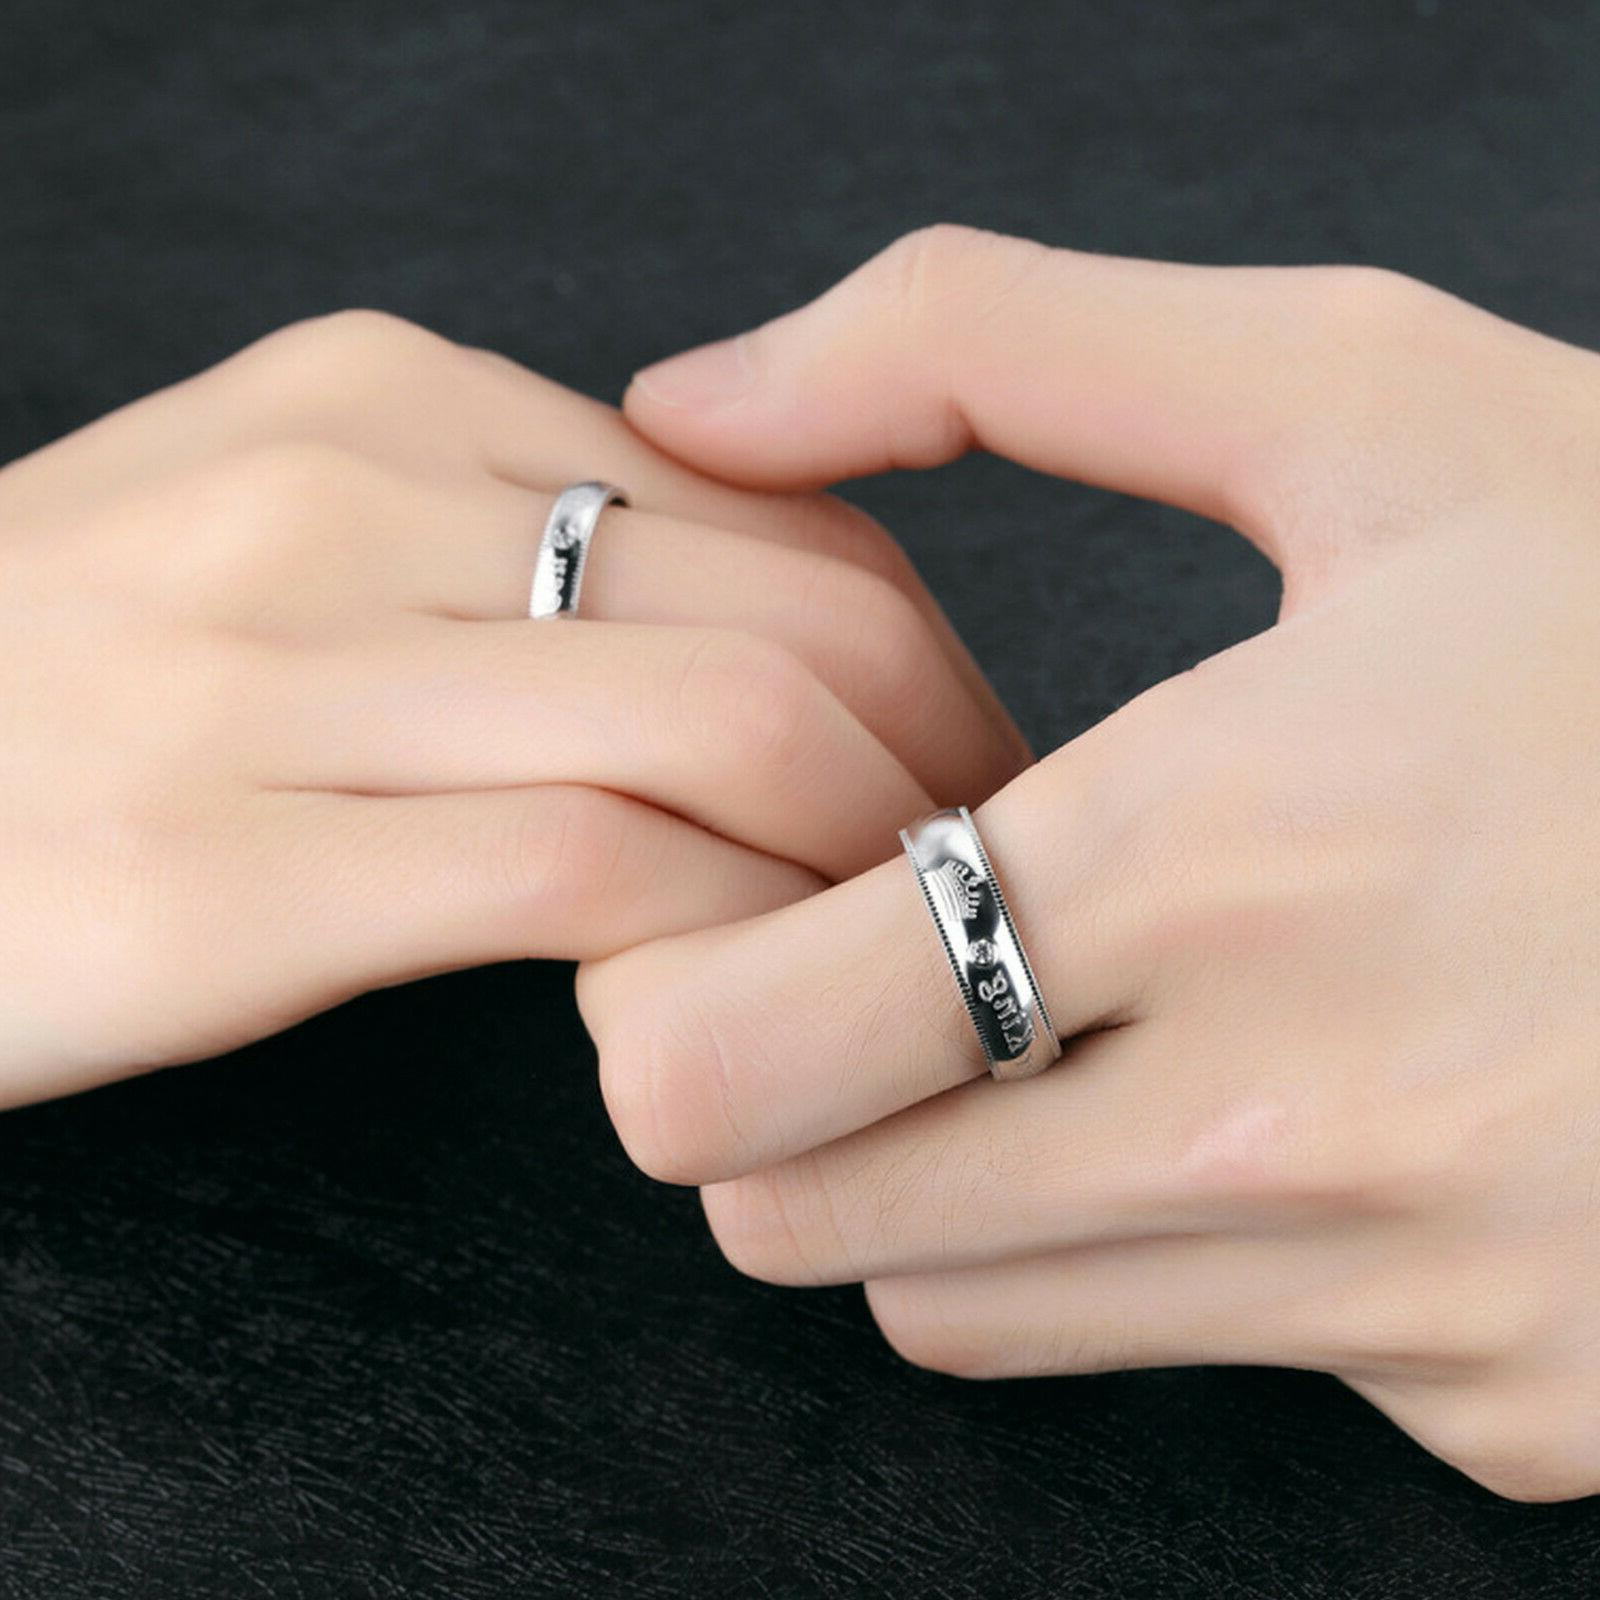 Her King or Queen Couple's Ring Comfort Band